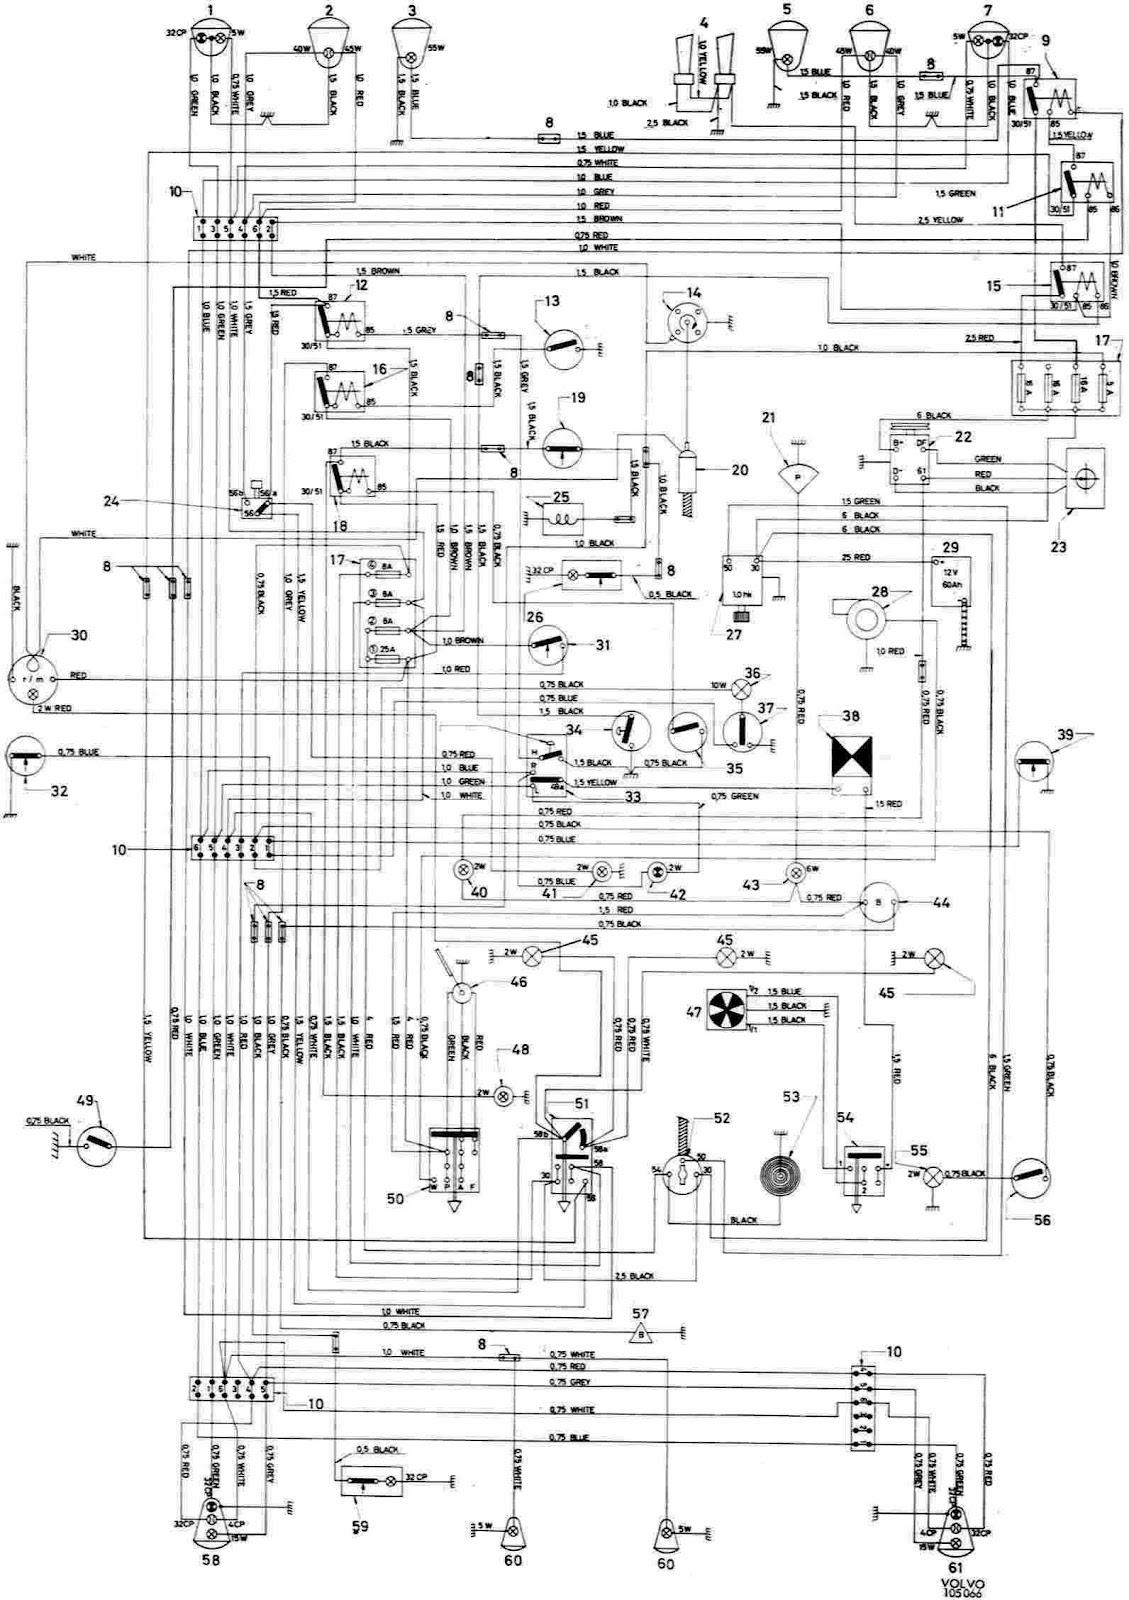 Volvo+123+GT+Complete+Wiring+Diagram 2005 volvo s40 wiring diagram volvo s40 steering diagram \u2022 wiring volvo xc90 stereo wiring diagram at gsmx.co